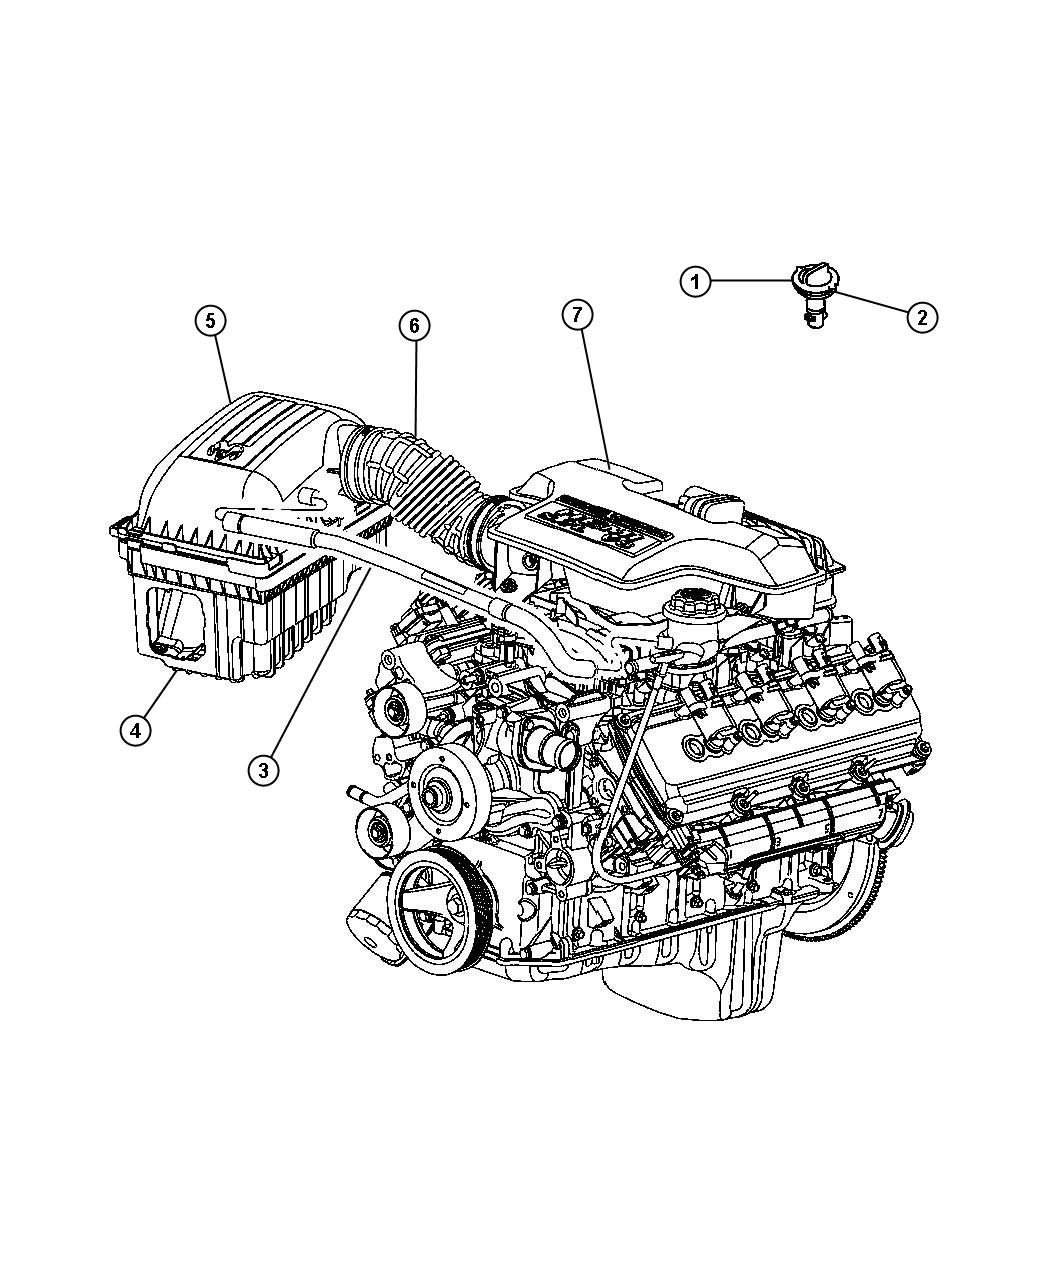 Ram 1500 Gas Vent Schematic, Ram, Free Engine Image For